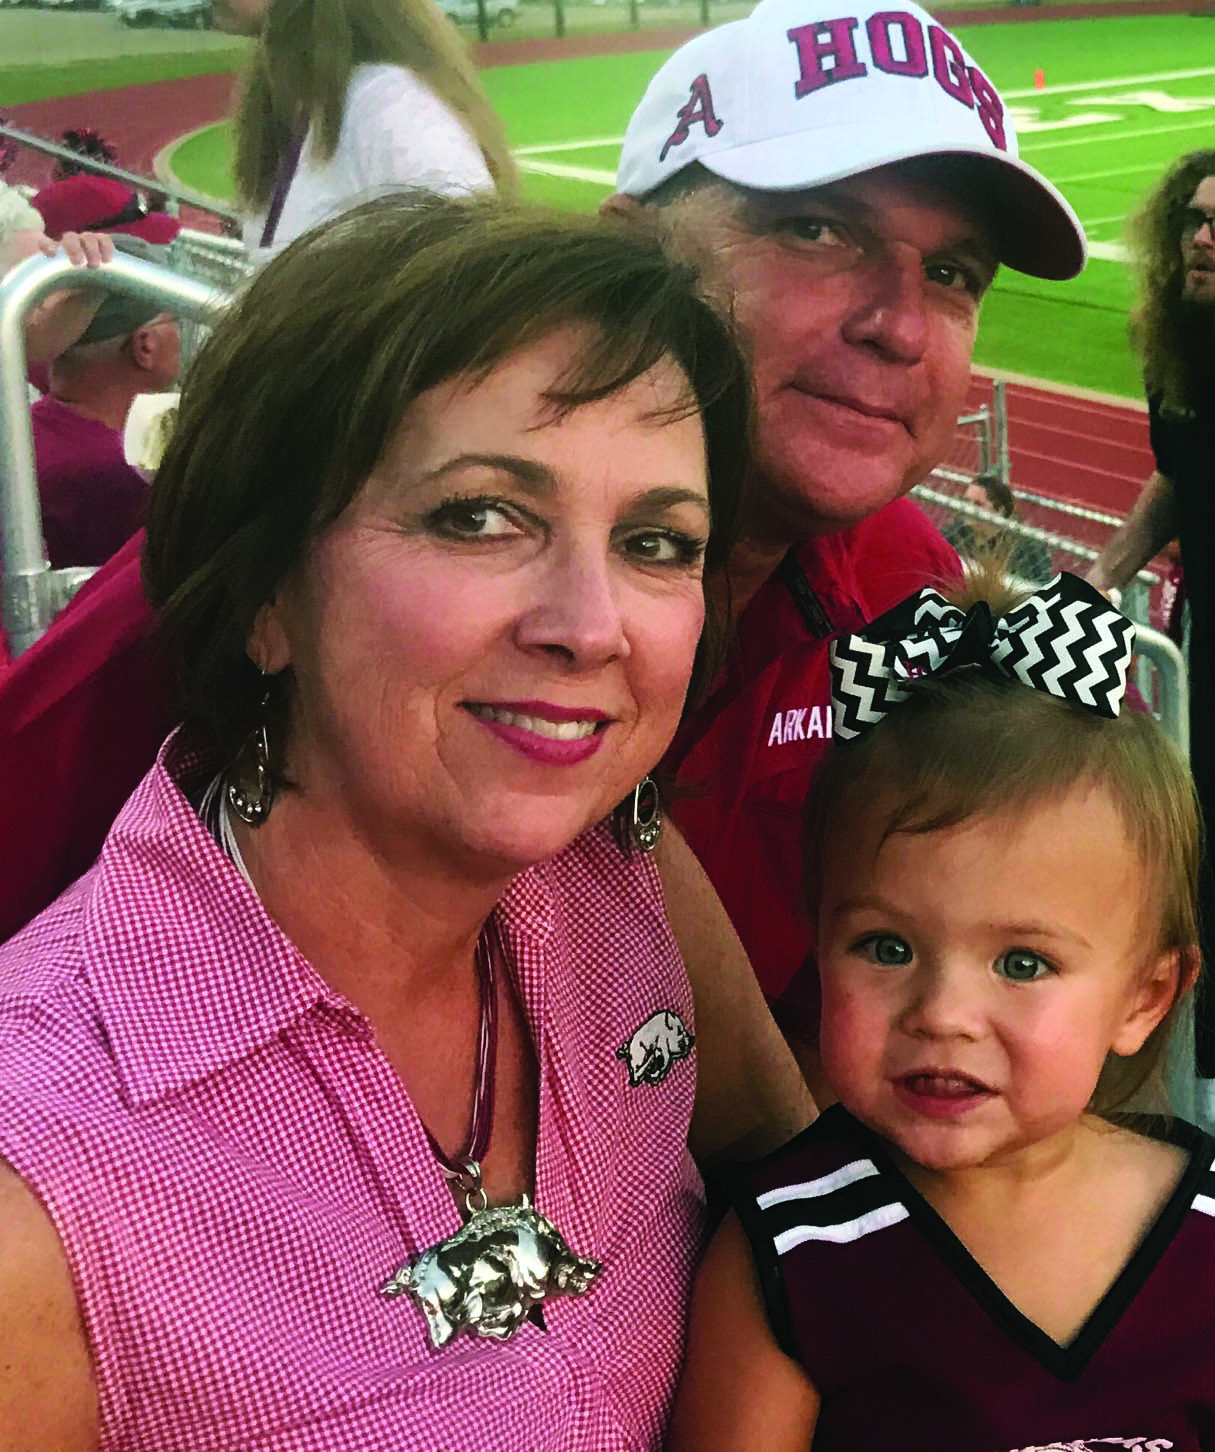 Shelby and Allen with their granddaughter, Sutton, during an Arkansas High football game.